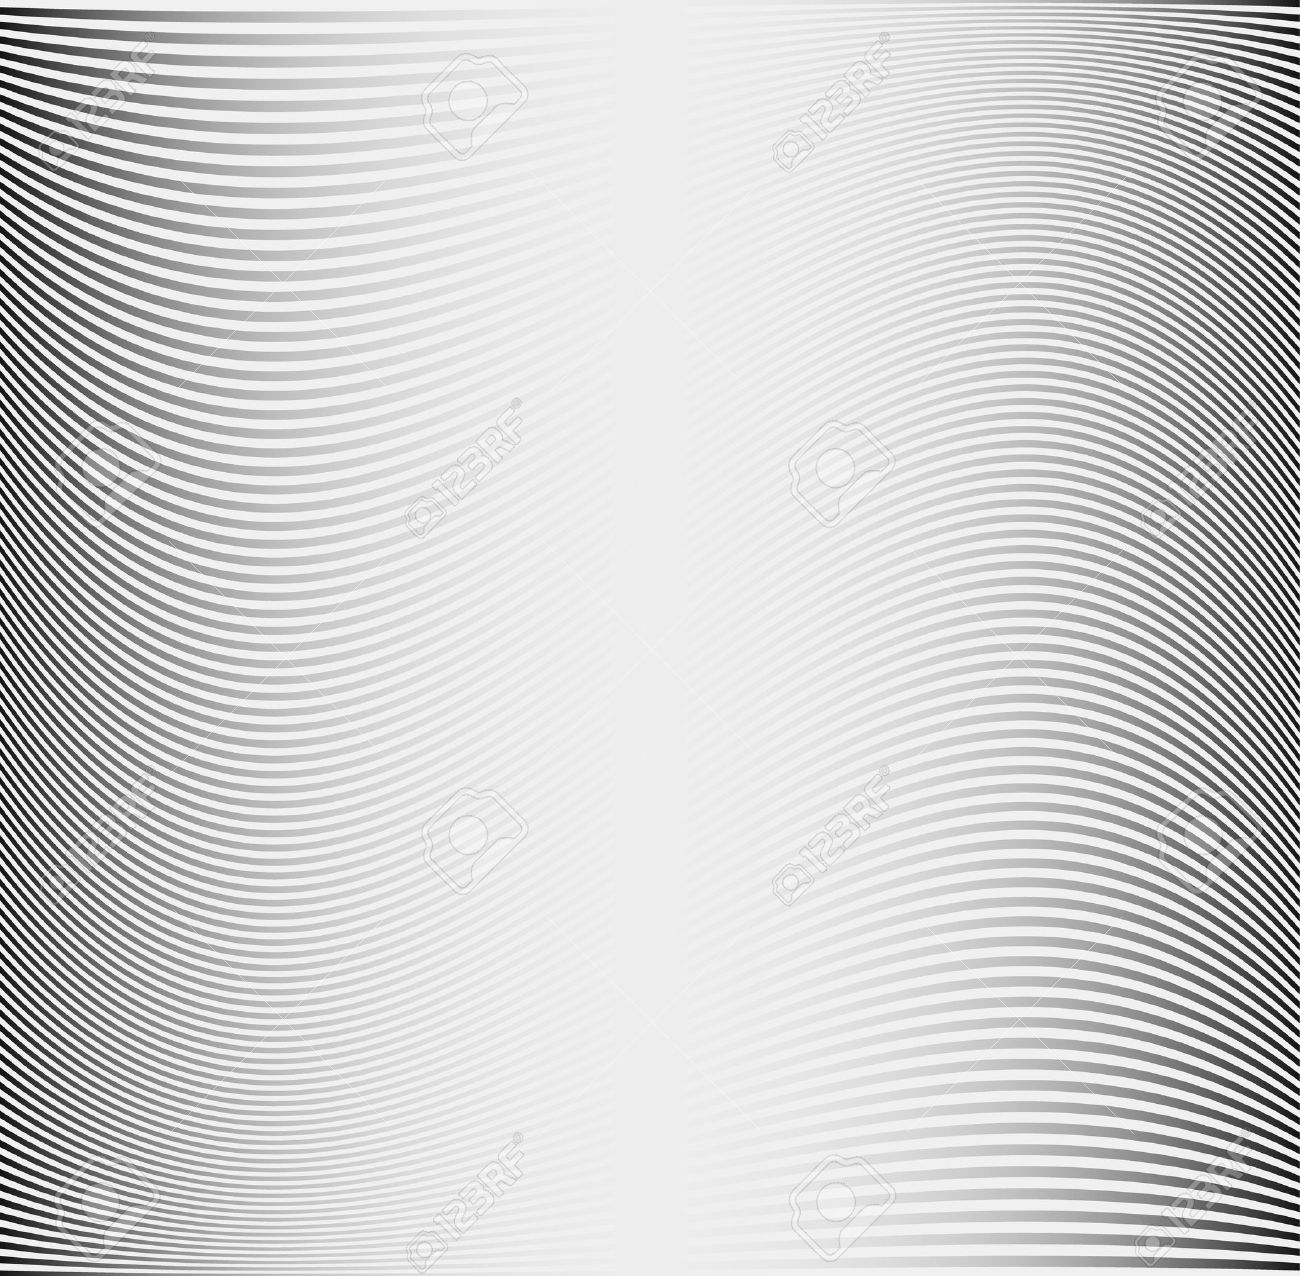 metallic texture or pattern with thin wavy lines grey background